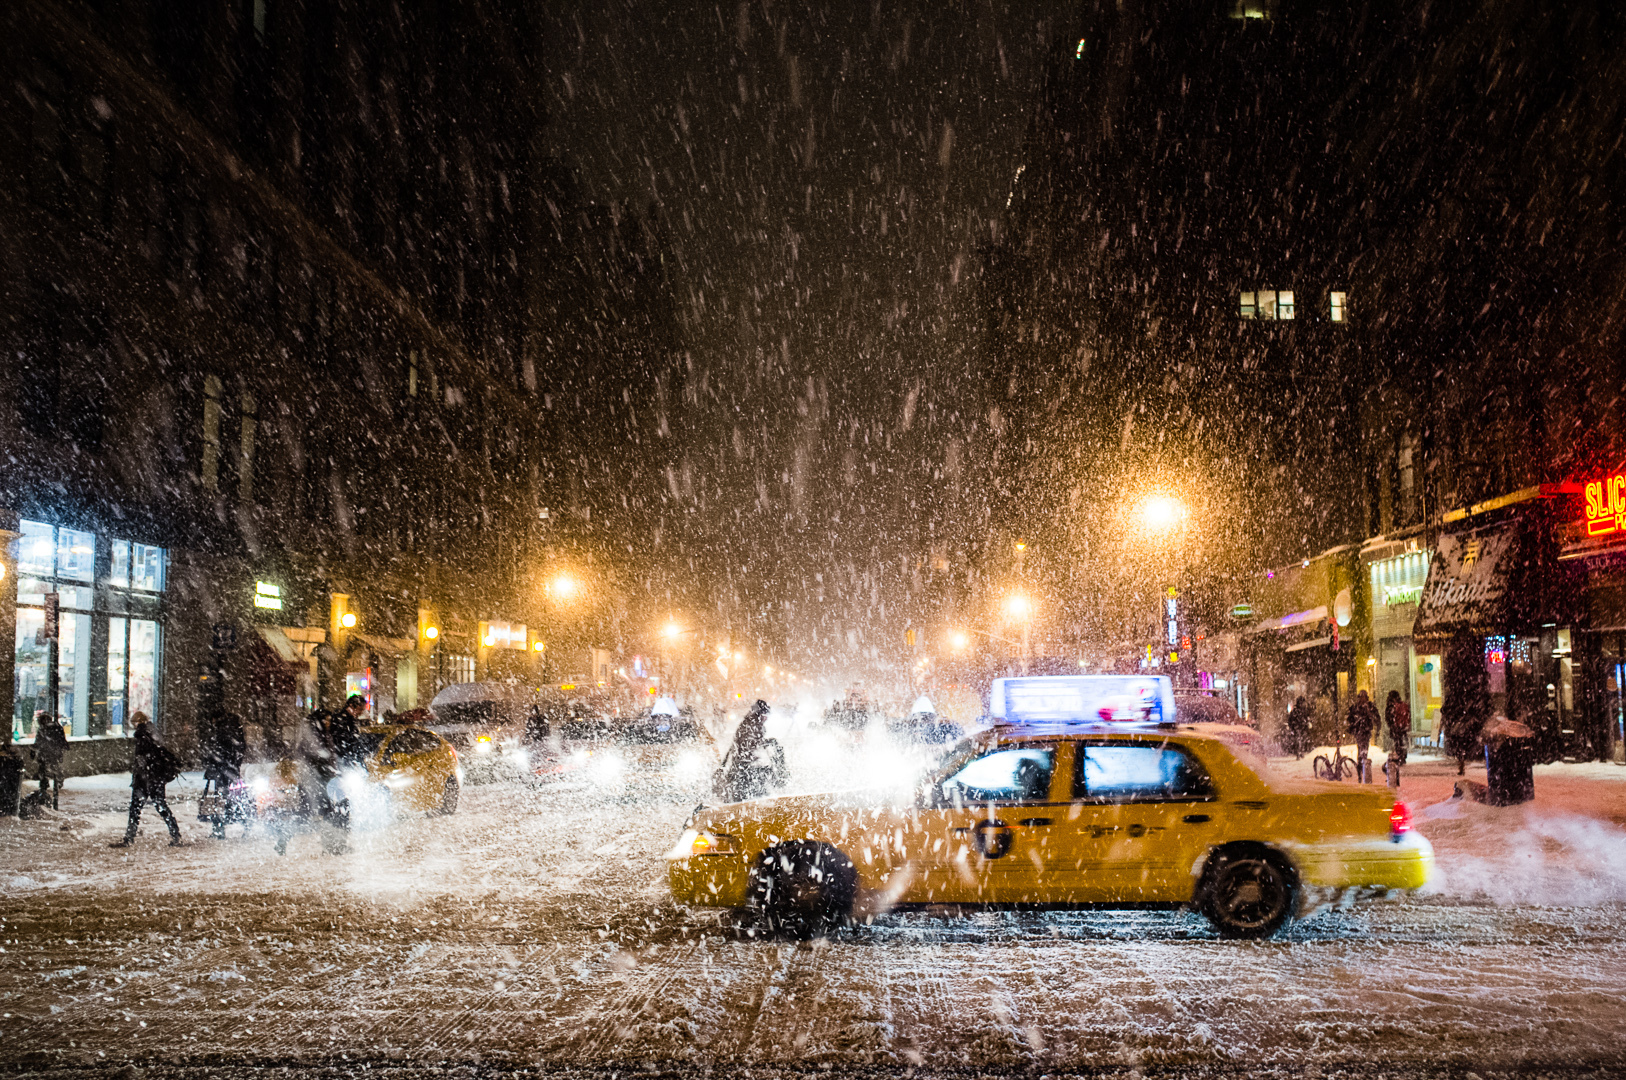 NYC's first major snowstorm of the season is on its way!